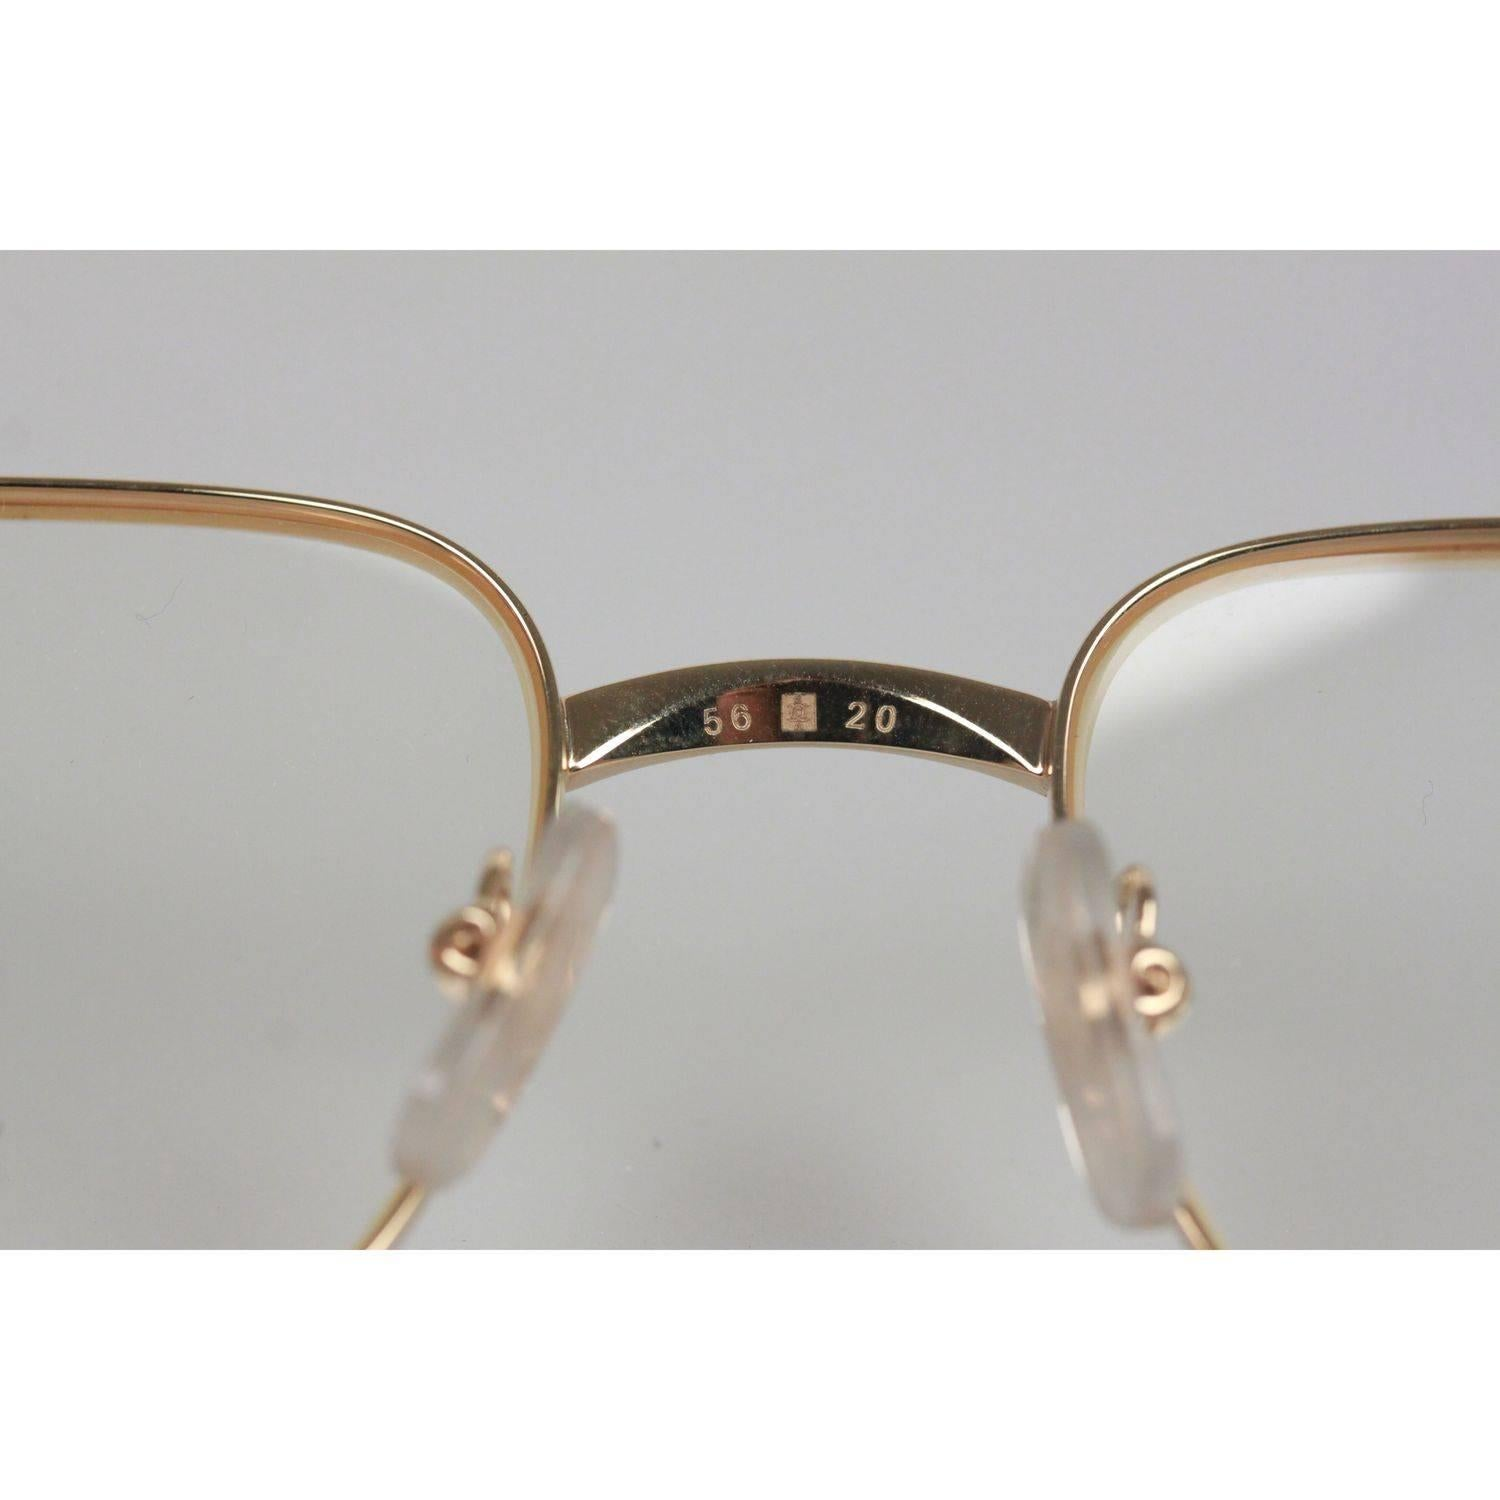 84f792eebf6 Cartier Half Rim Sunglasses Tan Wood Frame « One More Soul